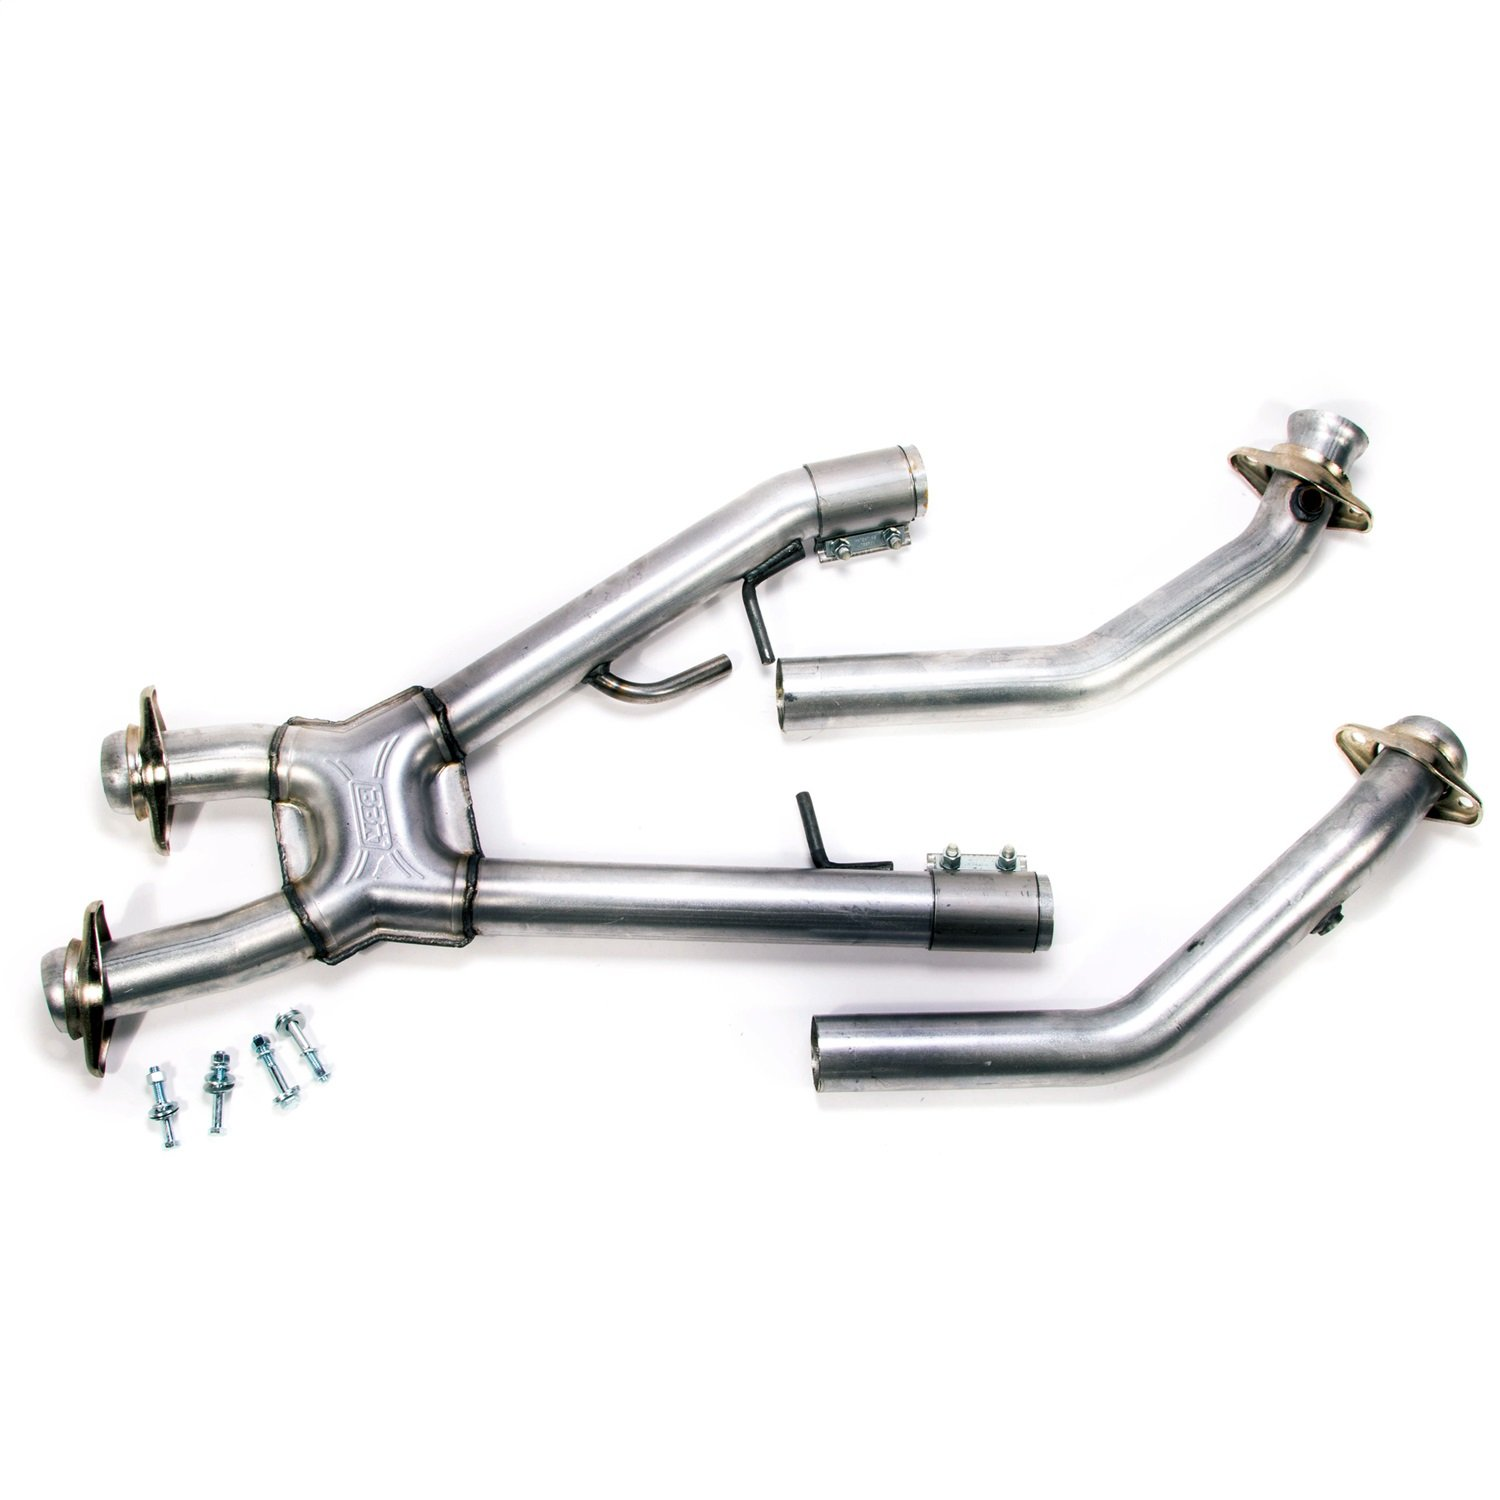 94-95 fits Mustang BBK PERFORMANCE 1664 2.50 Off-Road X-Pipe